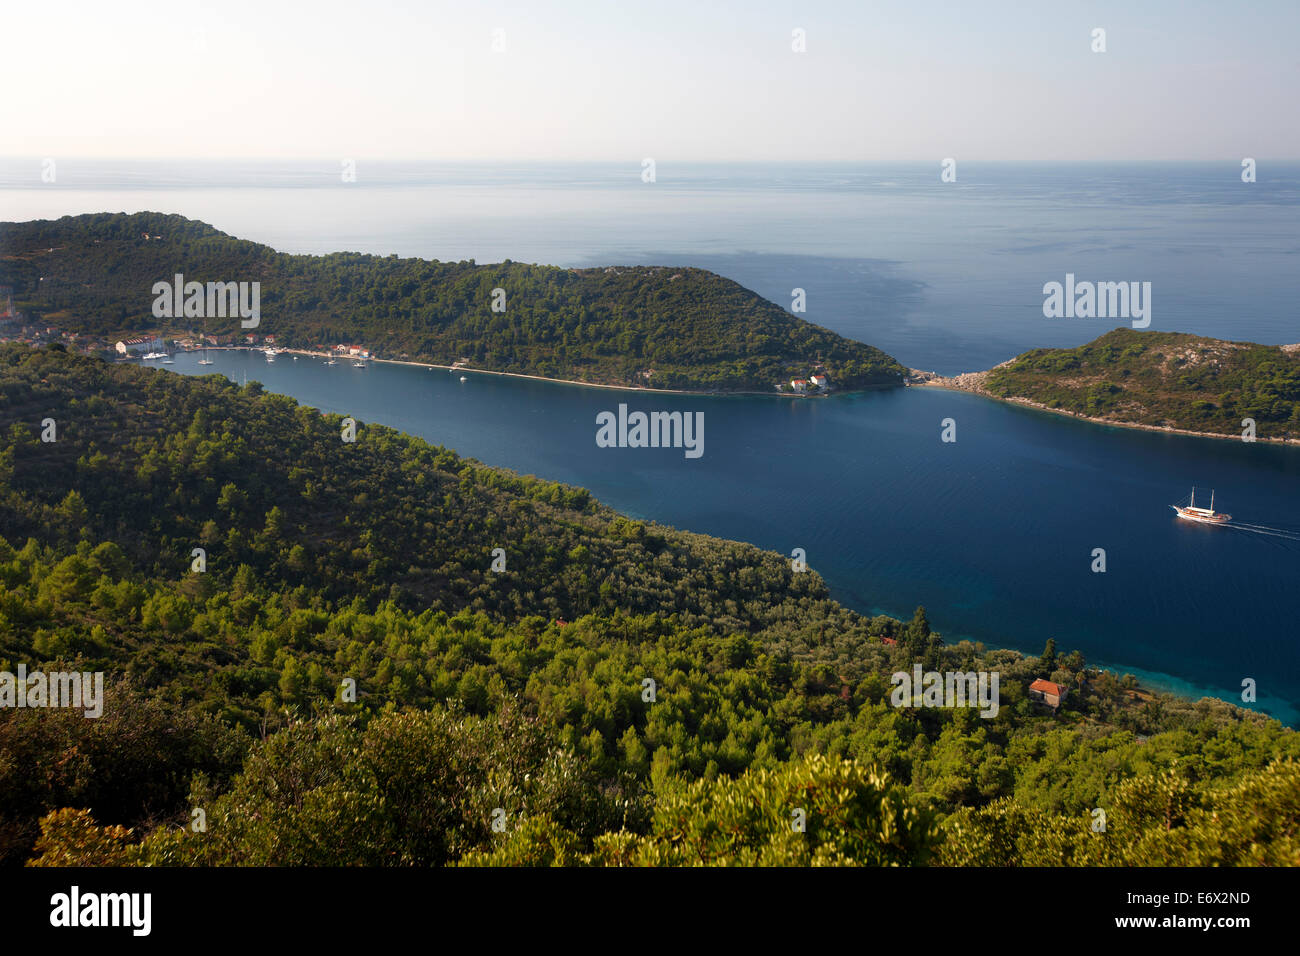 View over the Elaphiti Islands, Sipanska Luka, Sipan island, northwest of Dubrovnik, Croatia - Stock Image